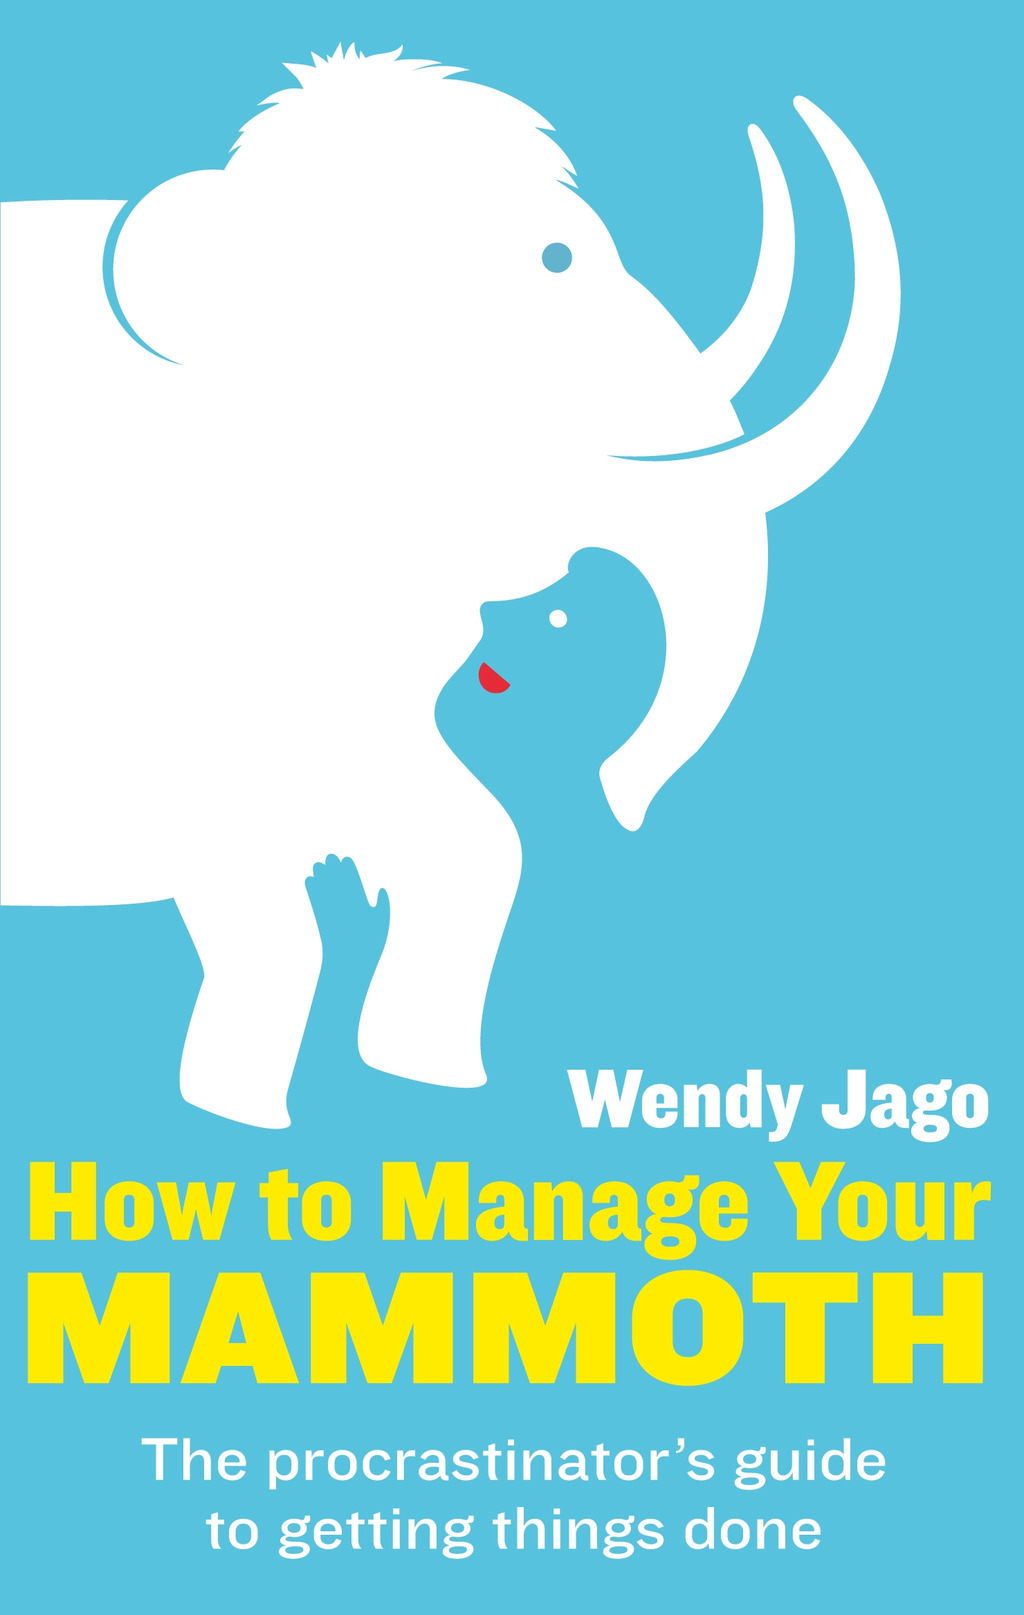 How To Manage Your Mammoth The procrastinator's guide to getting things done